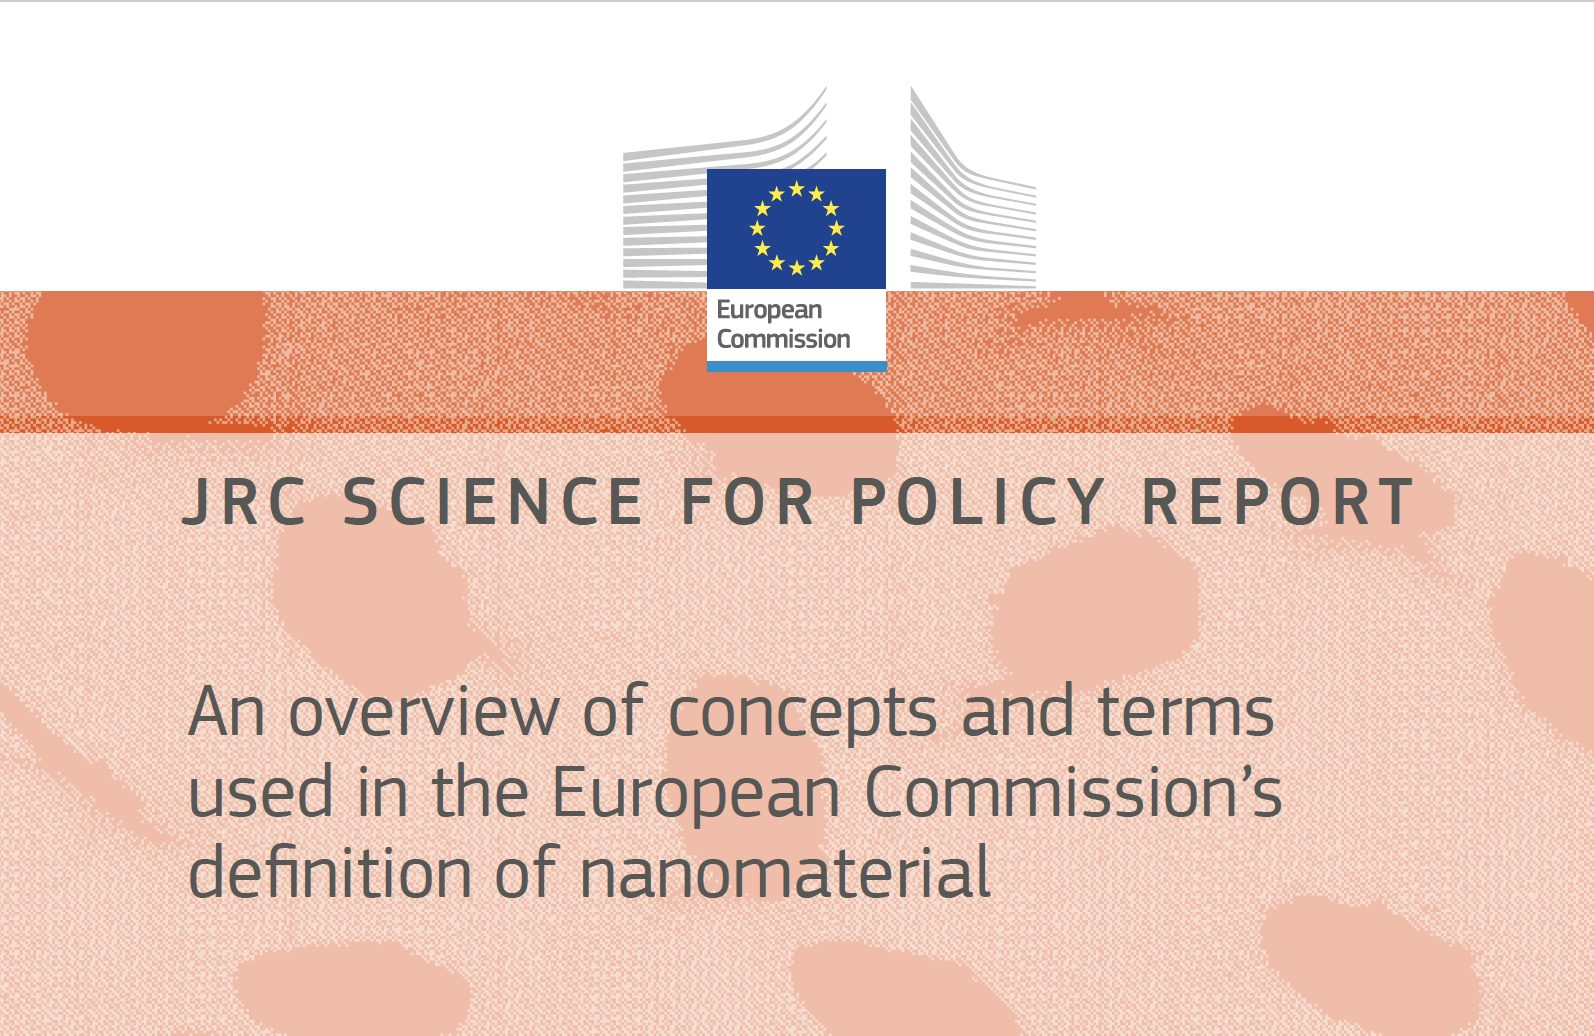 New publication of the JRC about the definition of nanomaterials by the European Commission